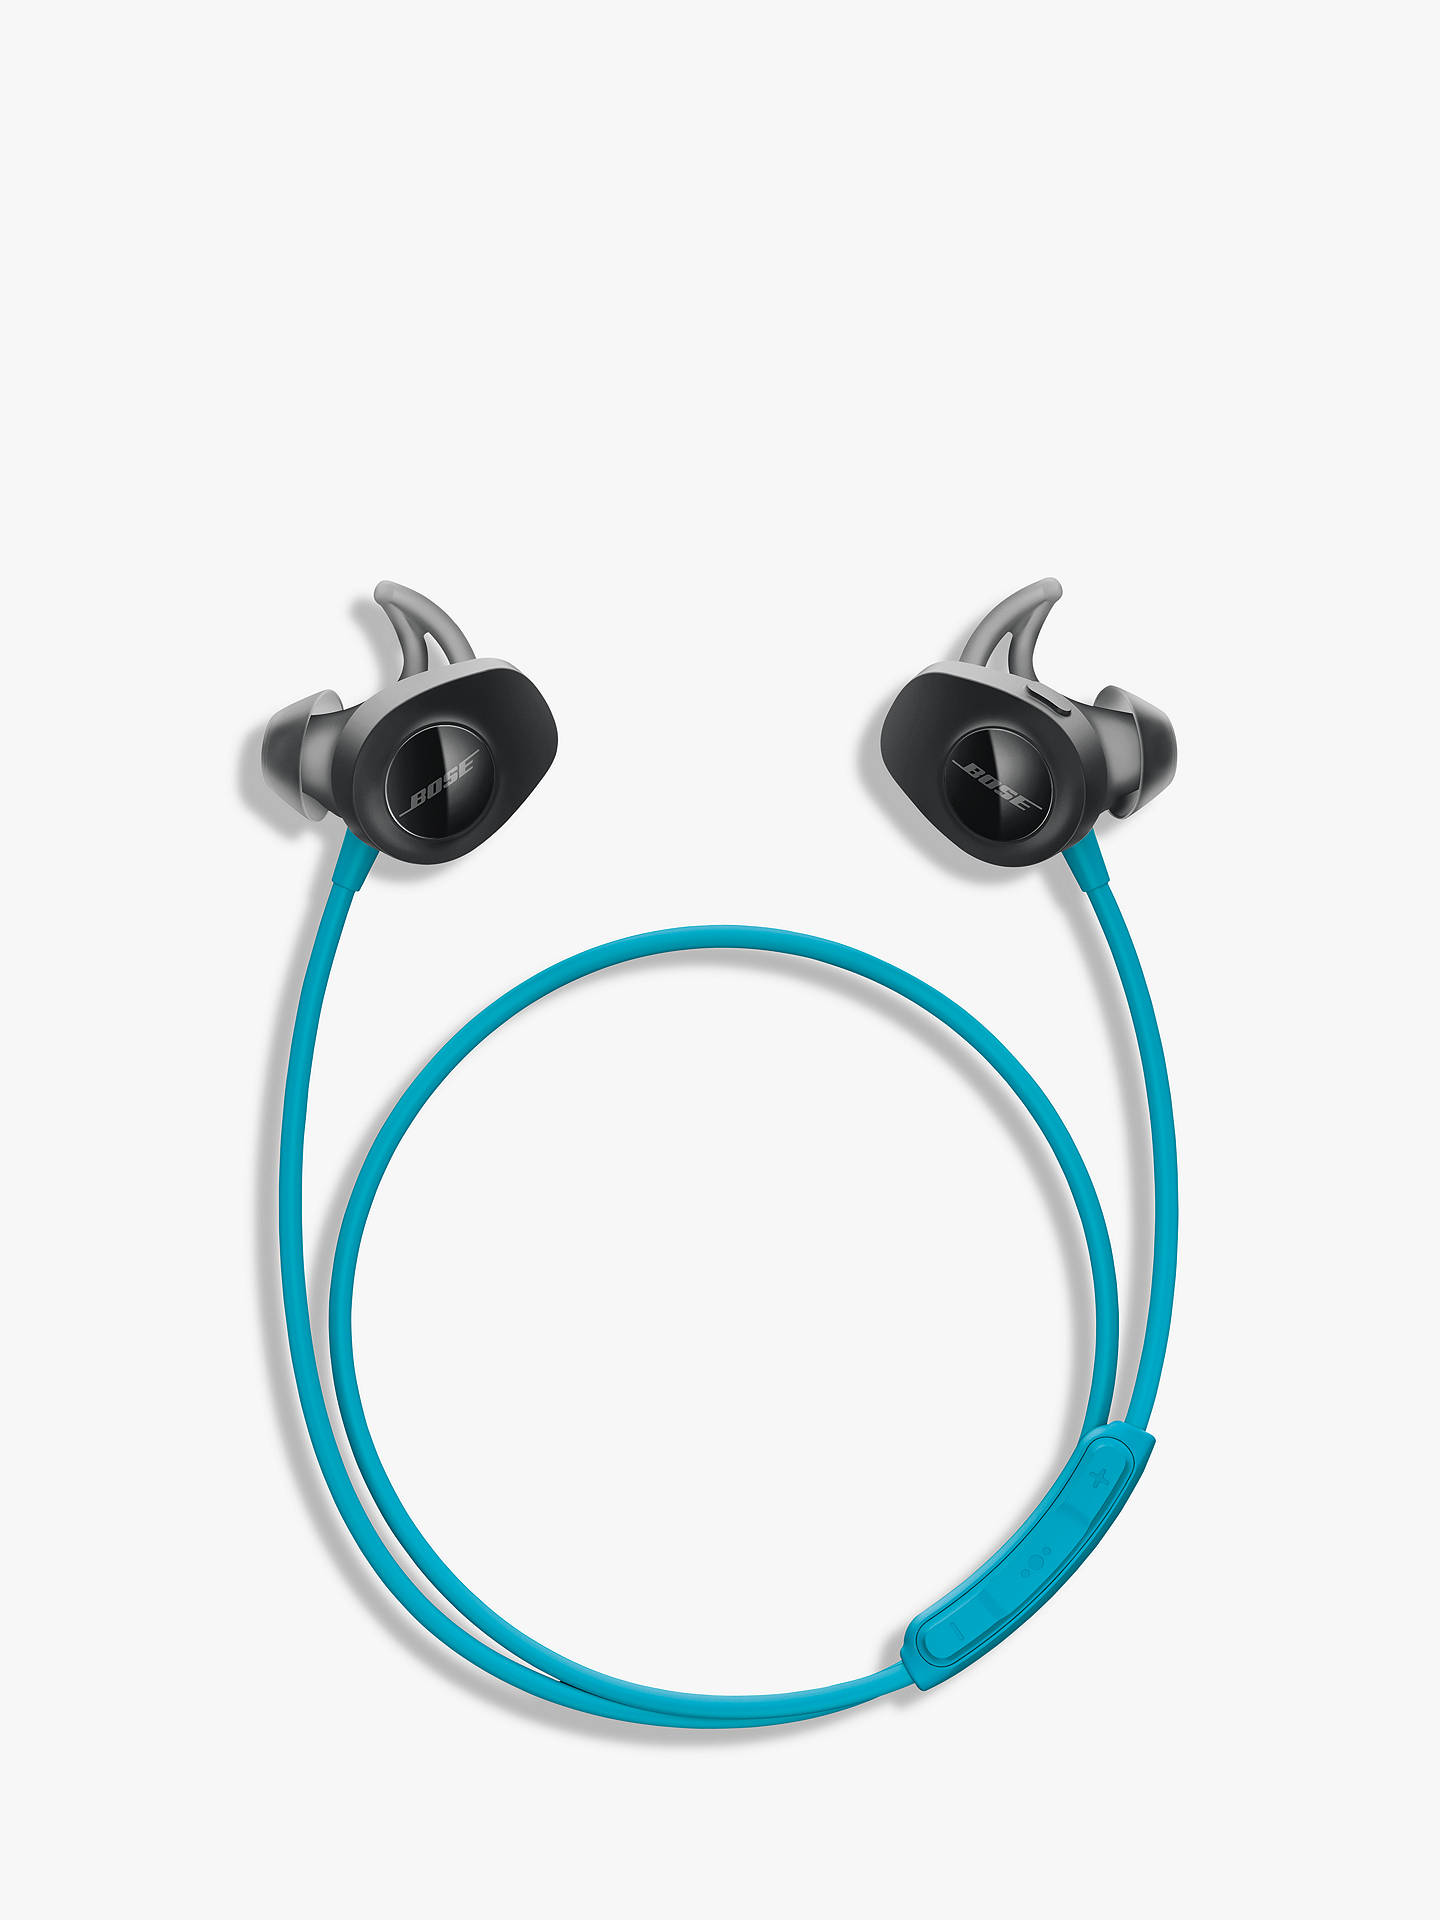 BuyBose® SoundSport™ Sweat & Weather-Resistant Wireless In-Ear Headphones With Bluetooth/NFC, 3-Button In-Line Remote and Carry Case, Aqua/Black Online at johnlewis.com